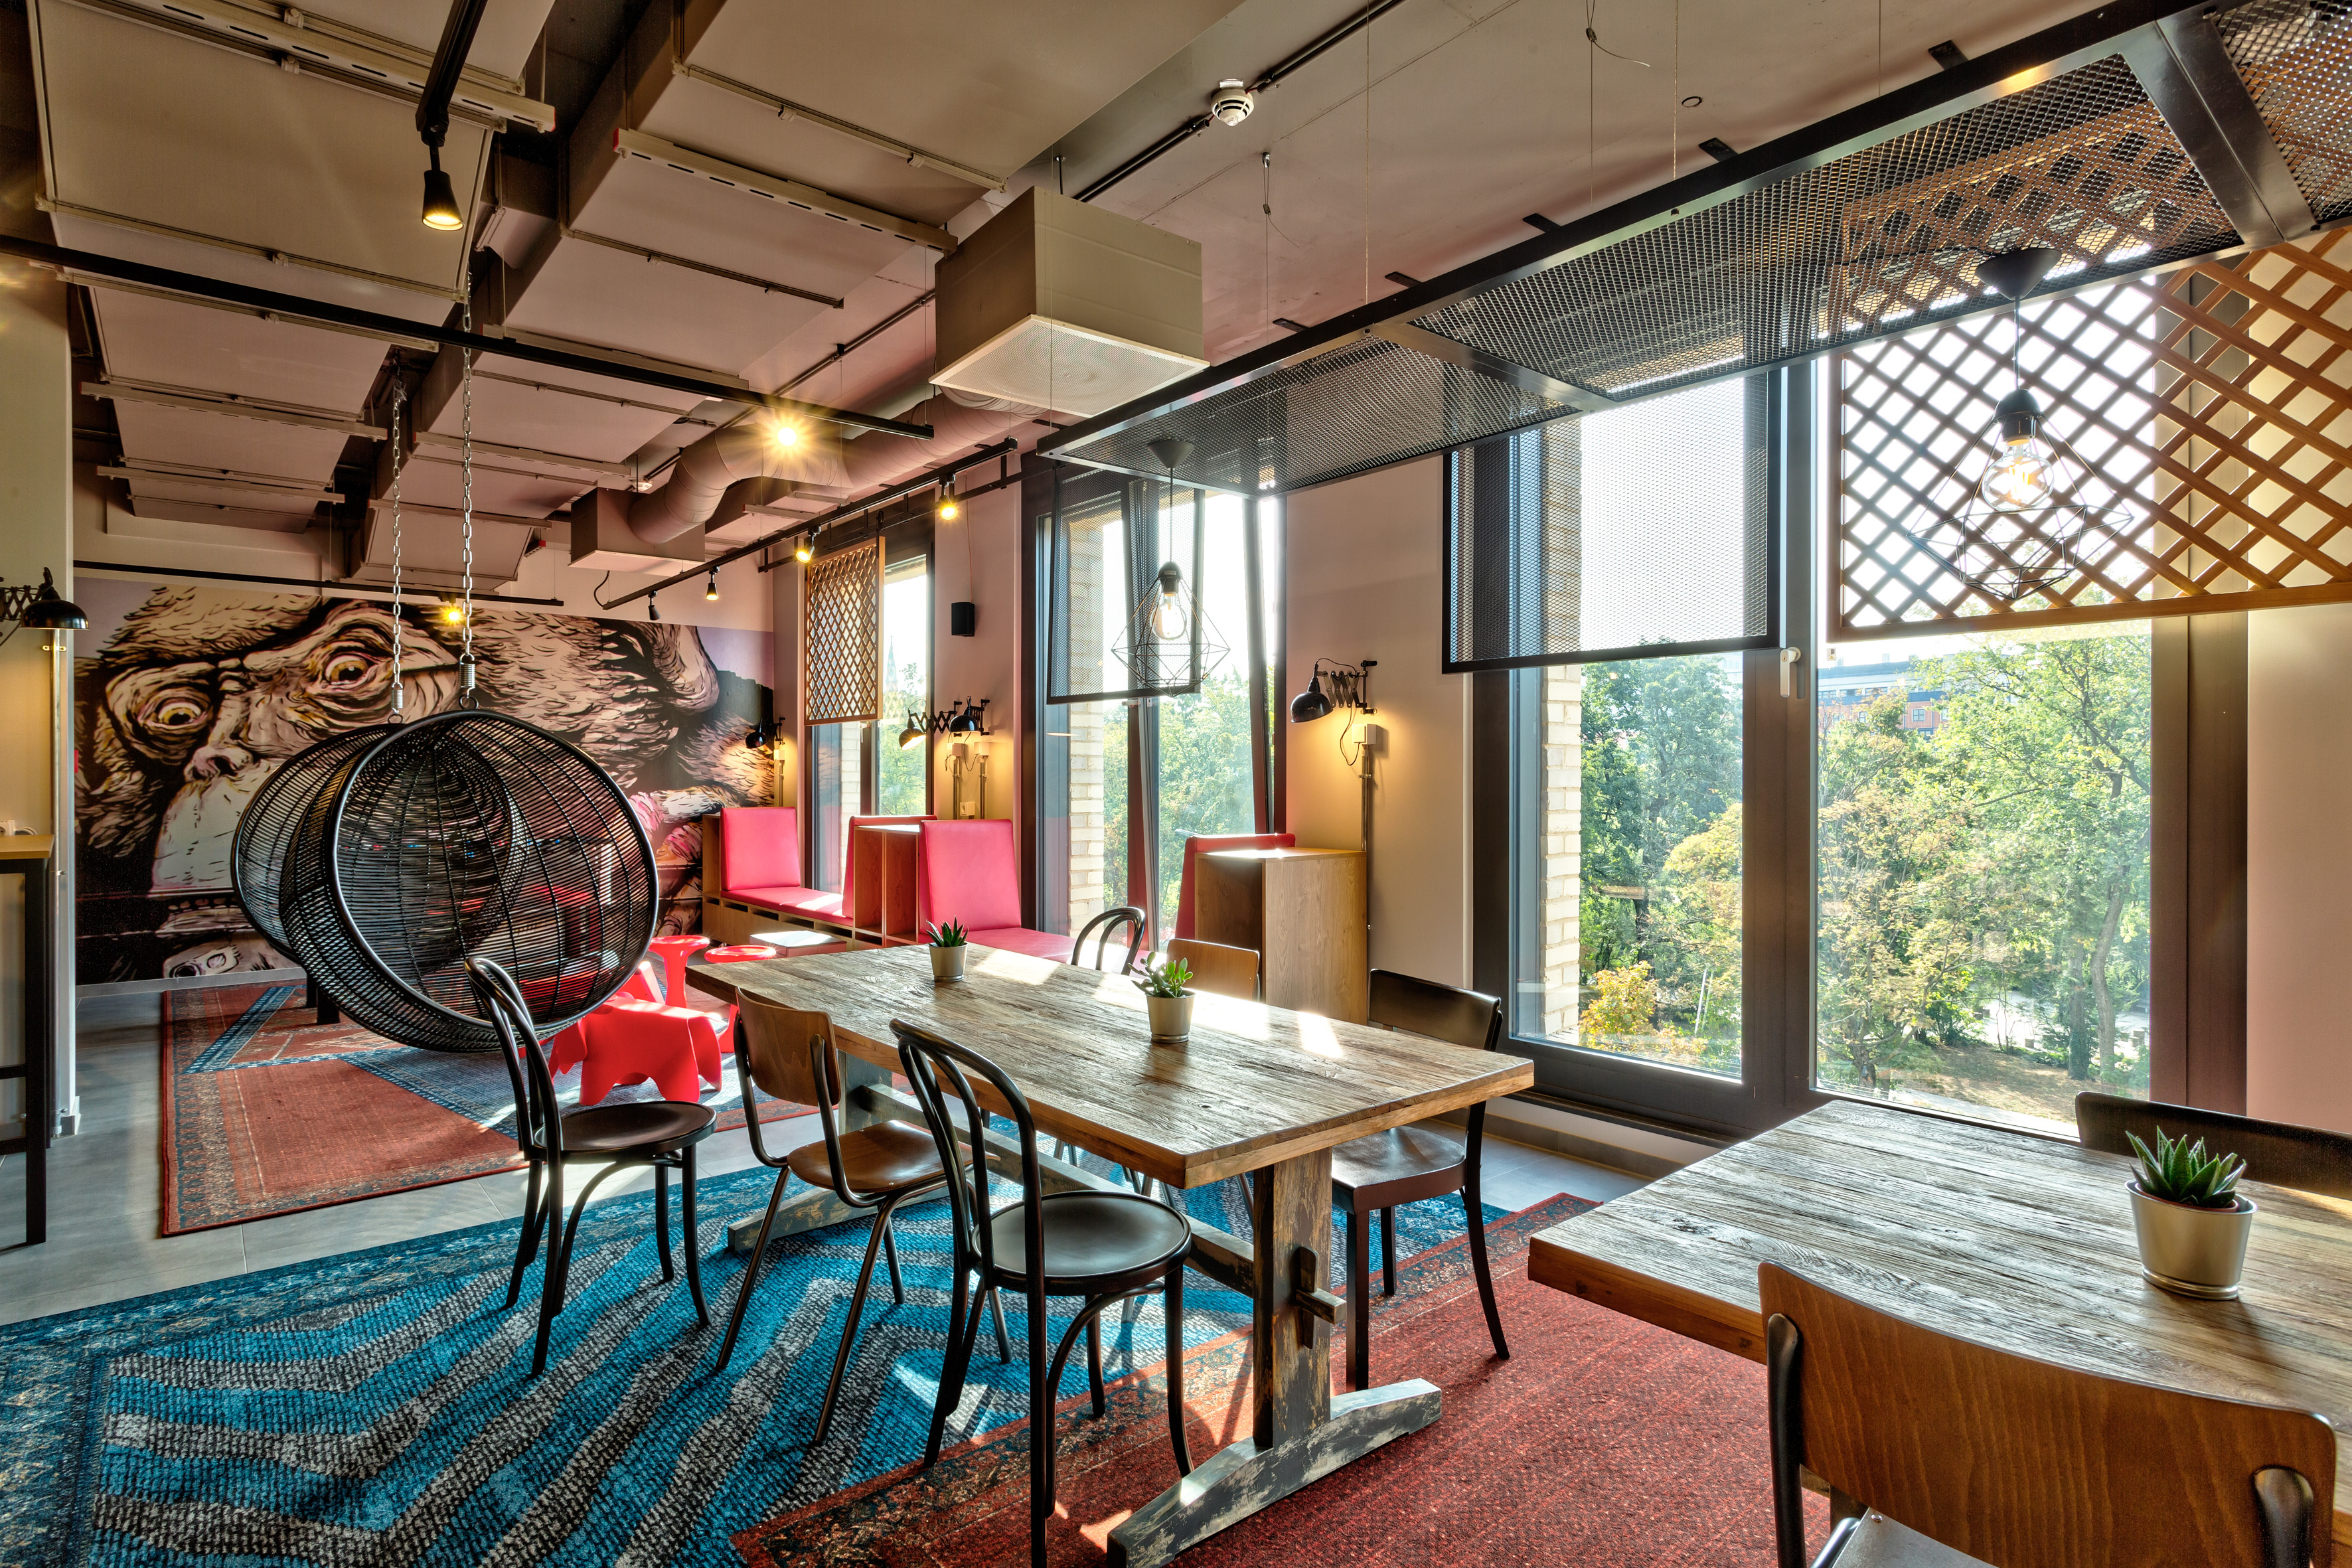 MEININGER hotels in Berlin | 5 x in the center and 1 x at SXF